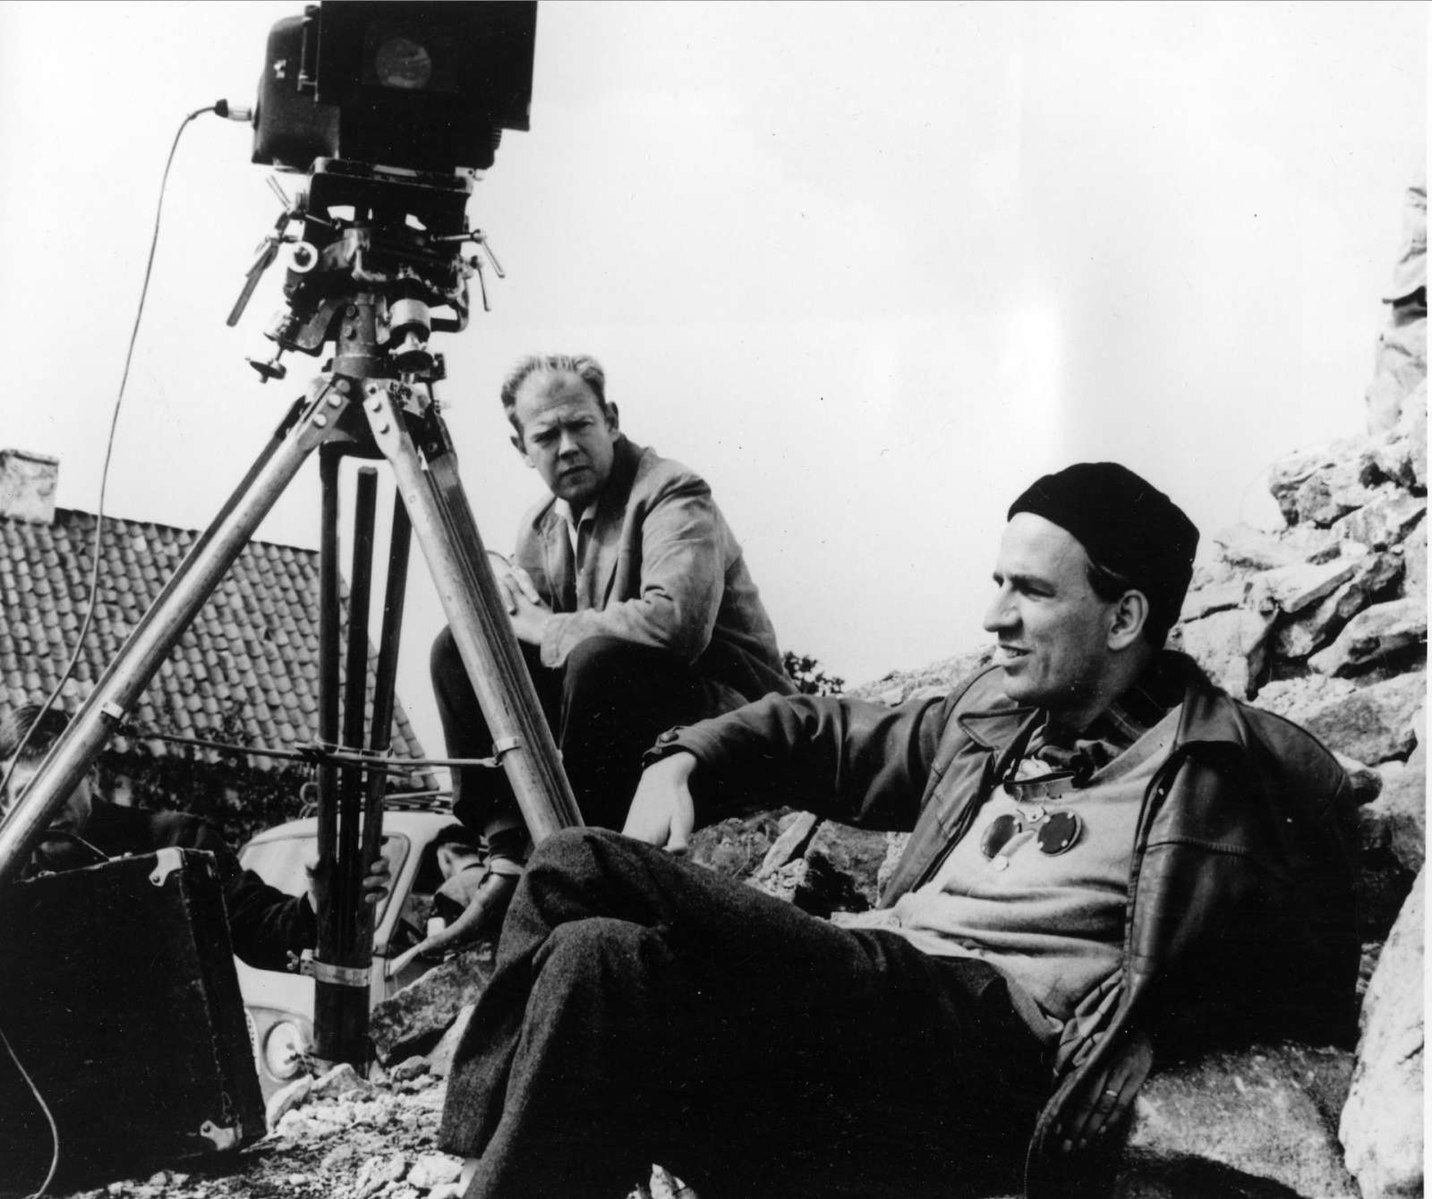 Prufrock: Ingmar Bergman and God, Tolkien's Middle-earth, and the Racism of Identity Politics